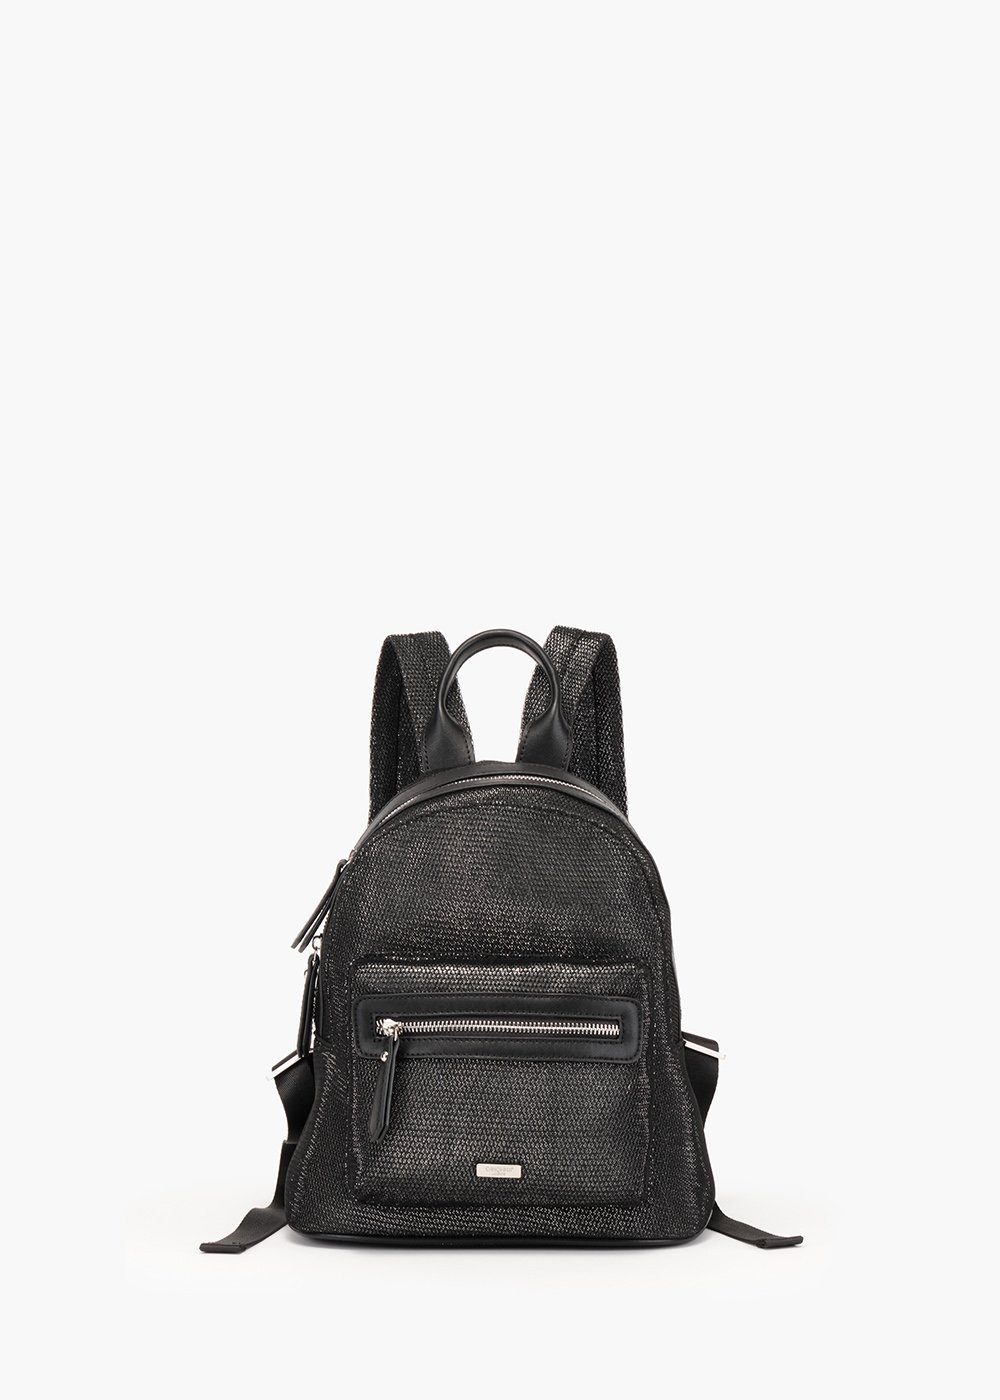 Basyl backpack in micromesh - Black / Silver - Woman